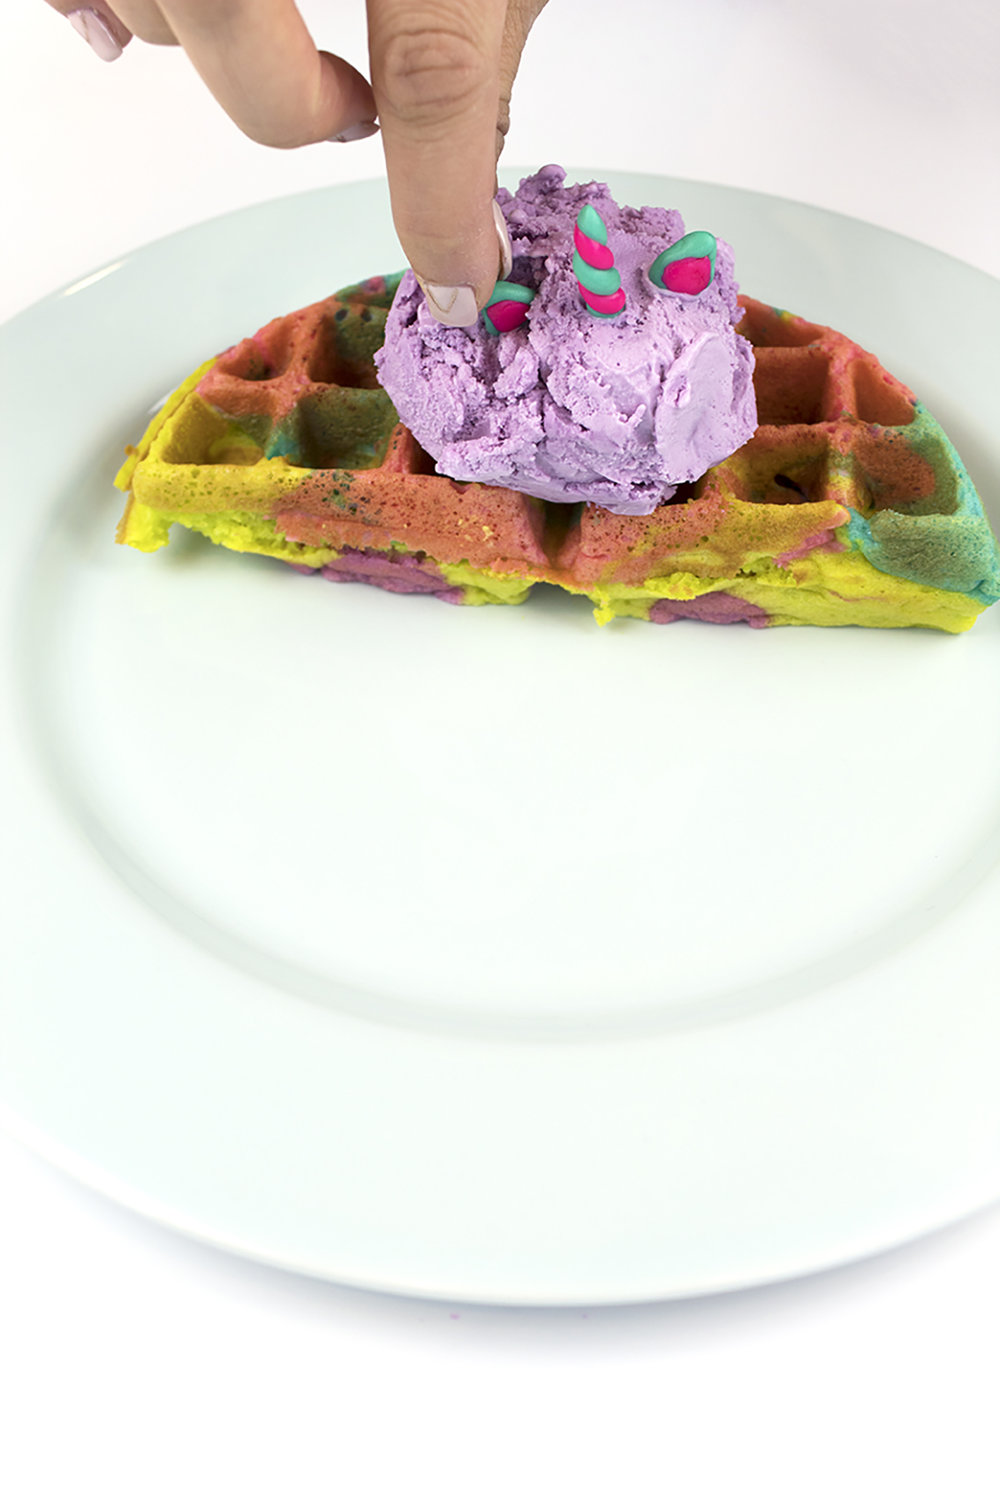 You've got to try this recipe for a Lisa Frank Tie-Dye Waffle Sundae! It's perfect for a 90's theme slumber party or a fun breakfast for the kiddos! #tiedye #lisafrank #icecreamsundae